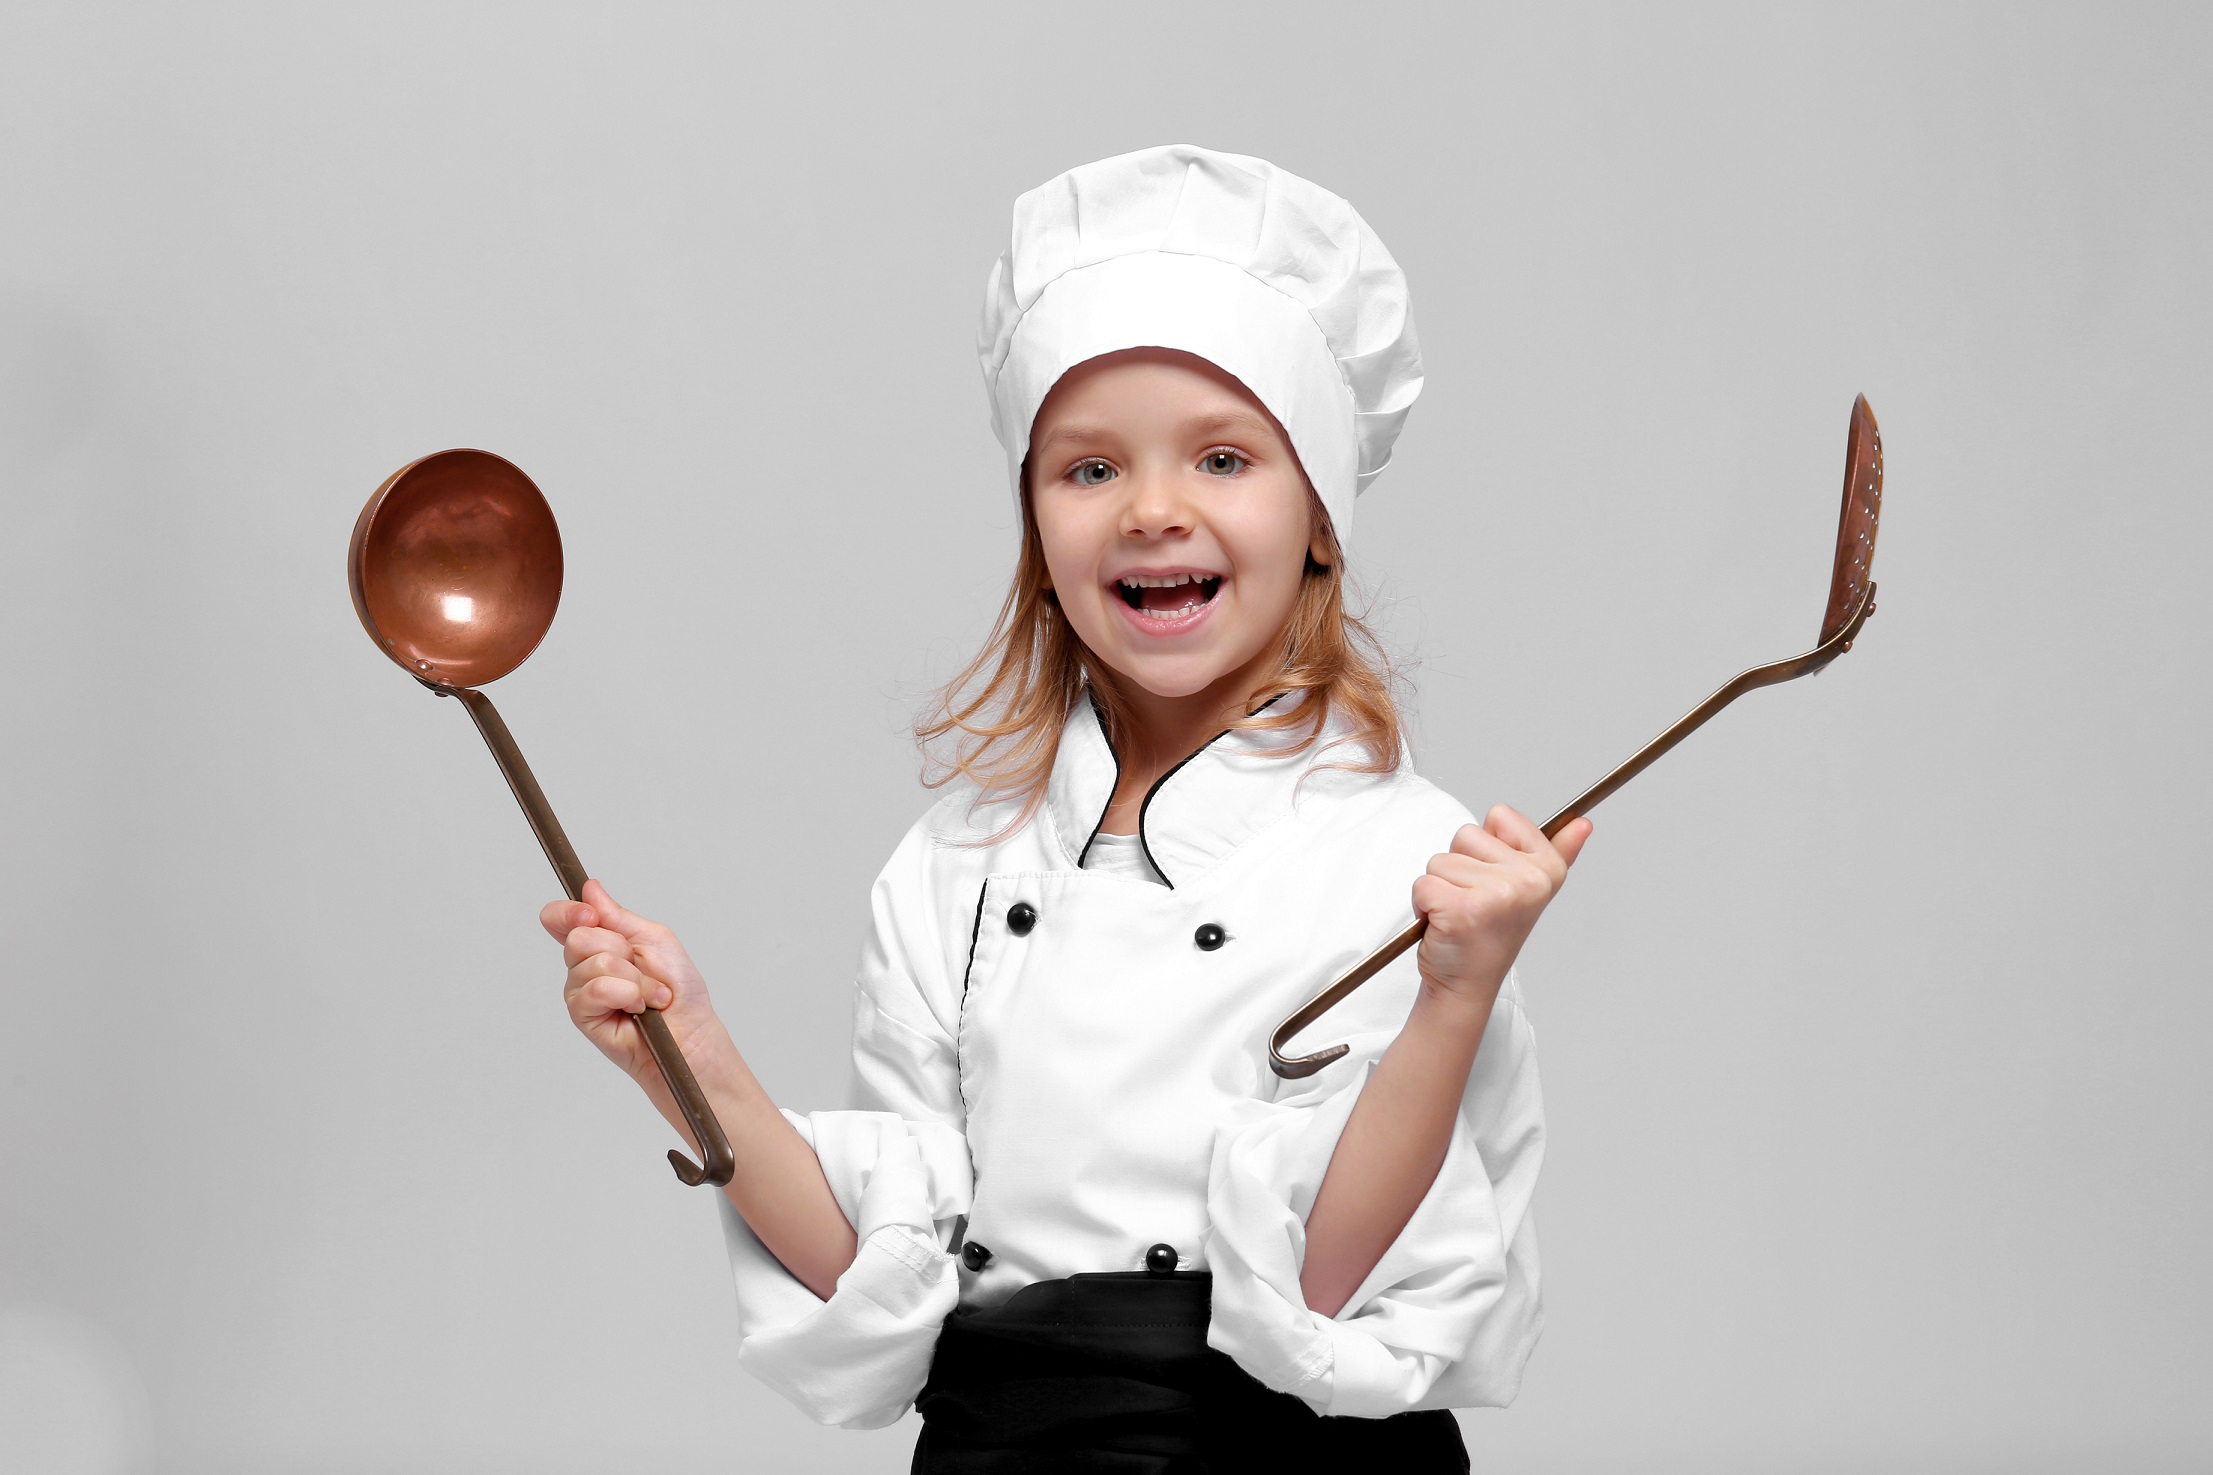 Why is it important to cook with kids?